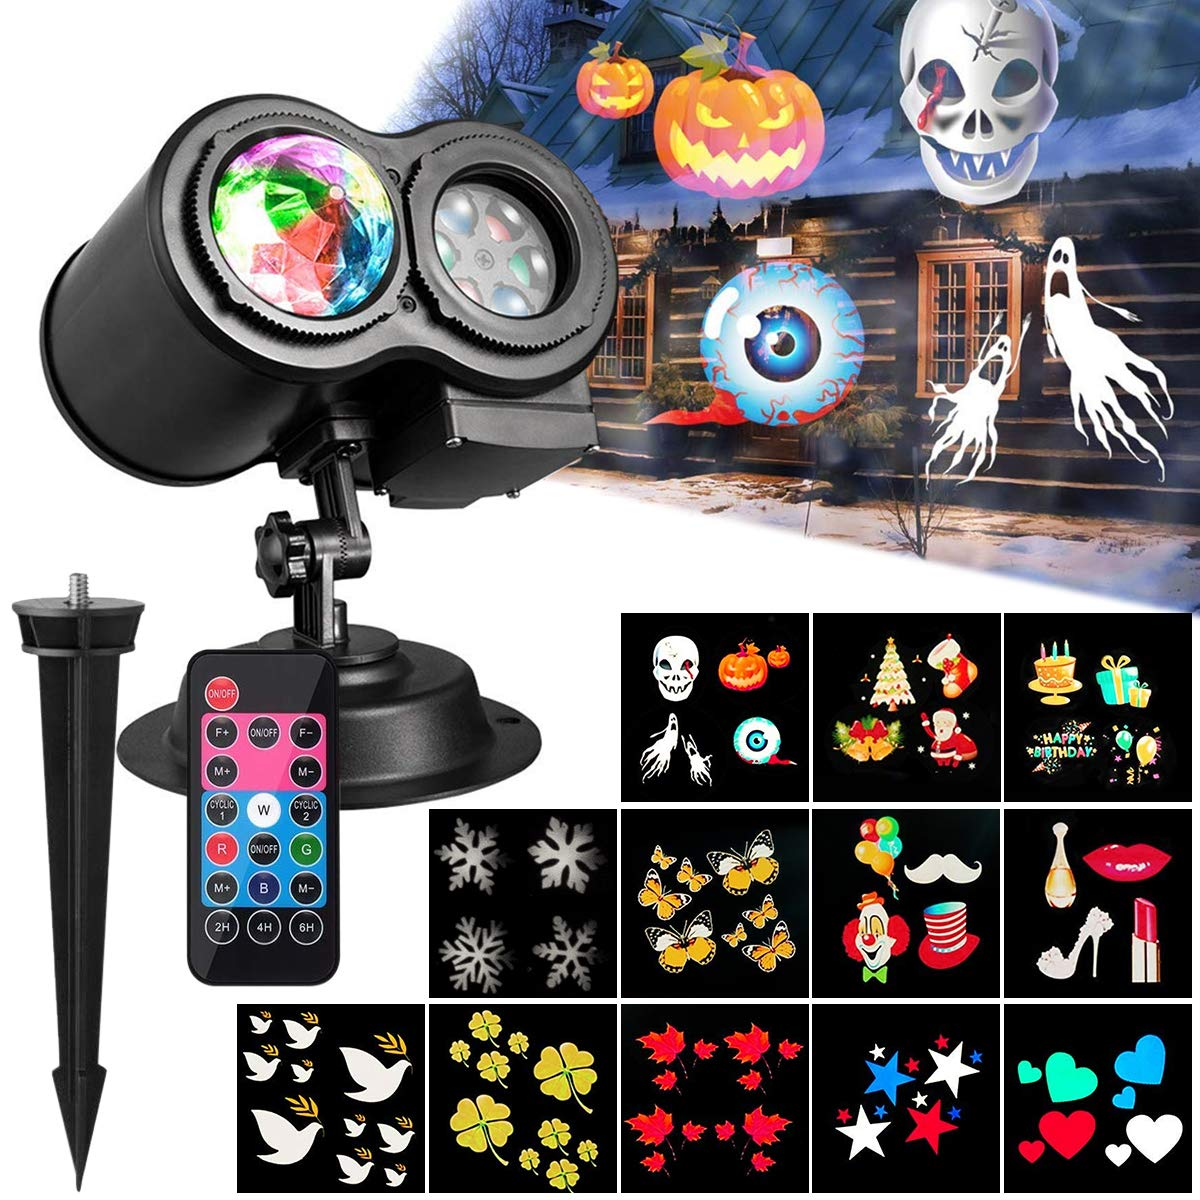 [Upgraded Version] Xmas Halloween Projector Light,TECKCOOL 3D LED Projector with Water Wave Light,12 Slides,Waterproof IP44,Perfect Gift for Christmas,Halloween,Holiday,Party,Lawn,Yard,Garden etc.